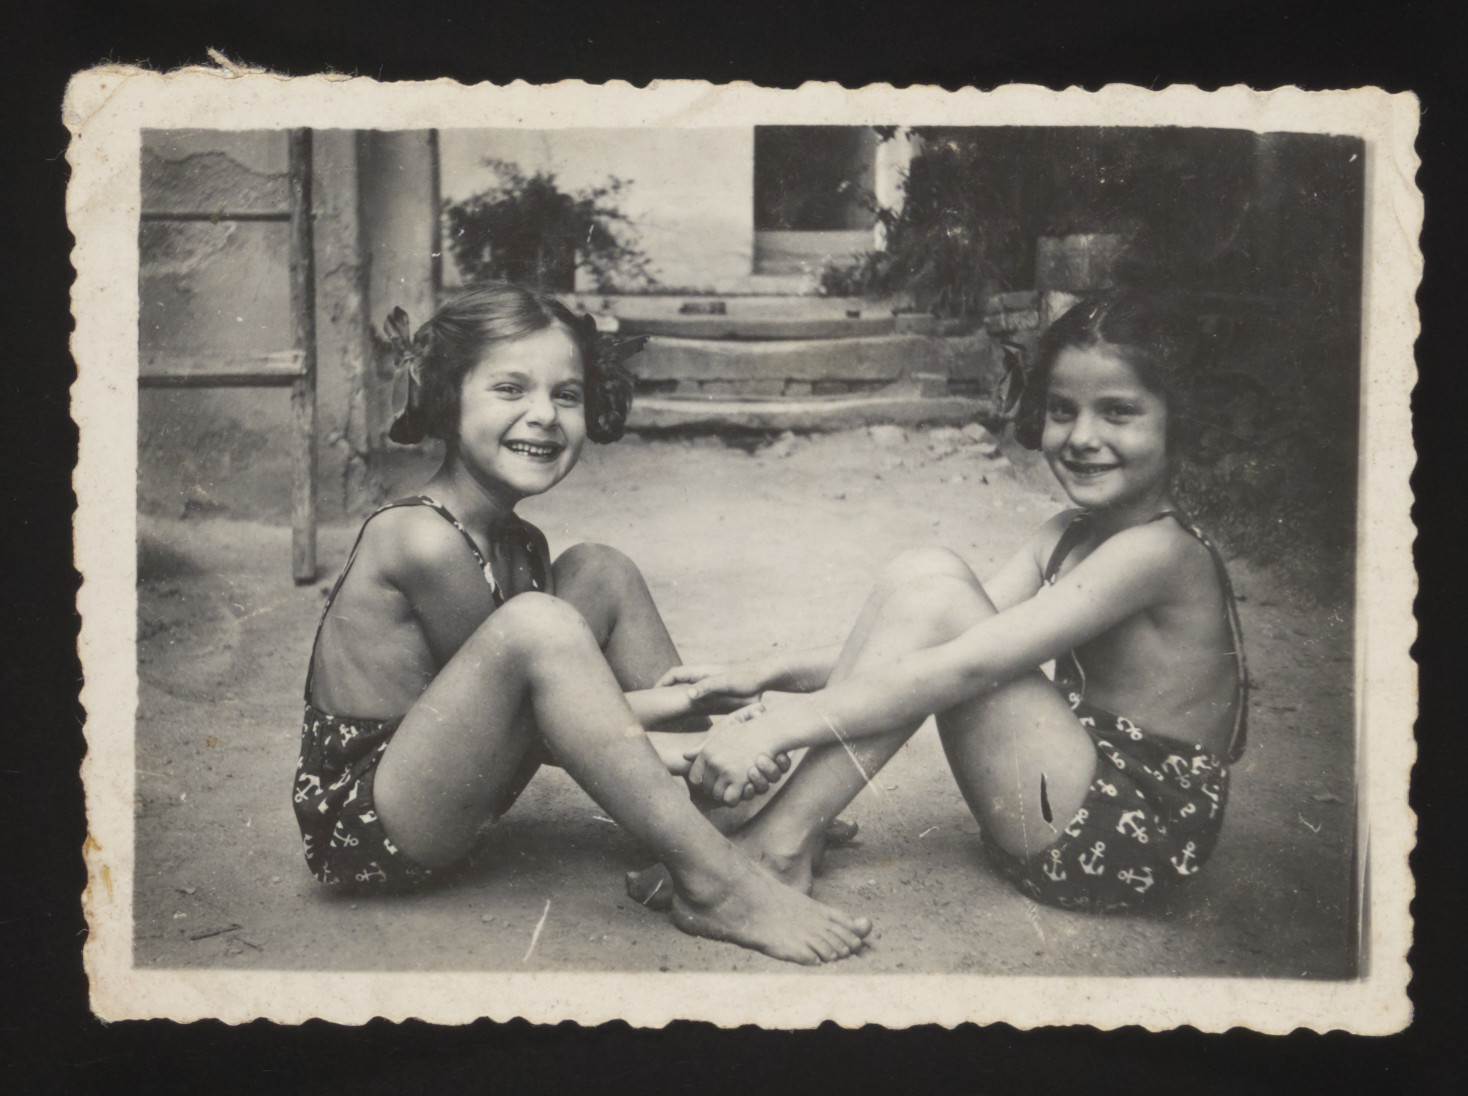 Twin sisters Yehudit and Lea pose together holding hands in their bathing suits.